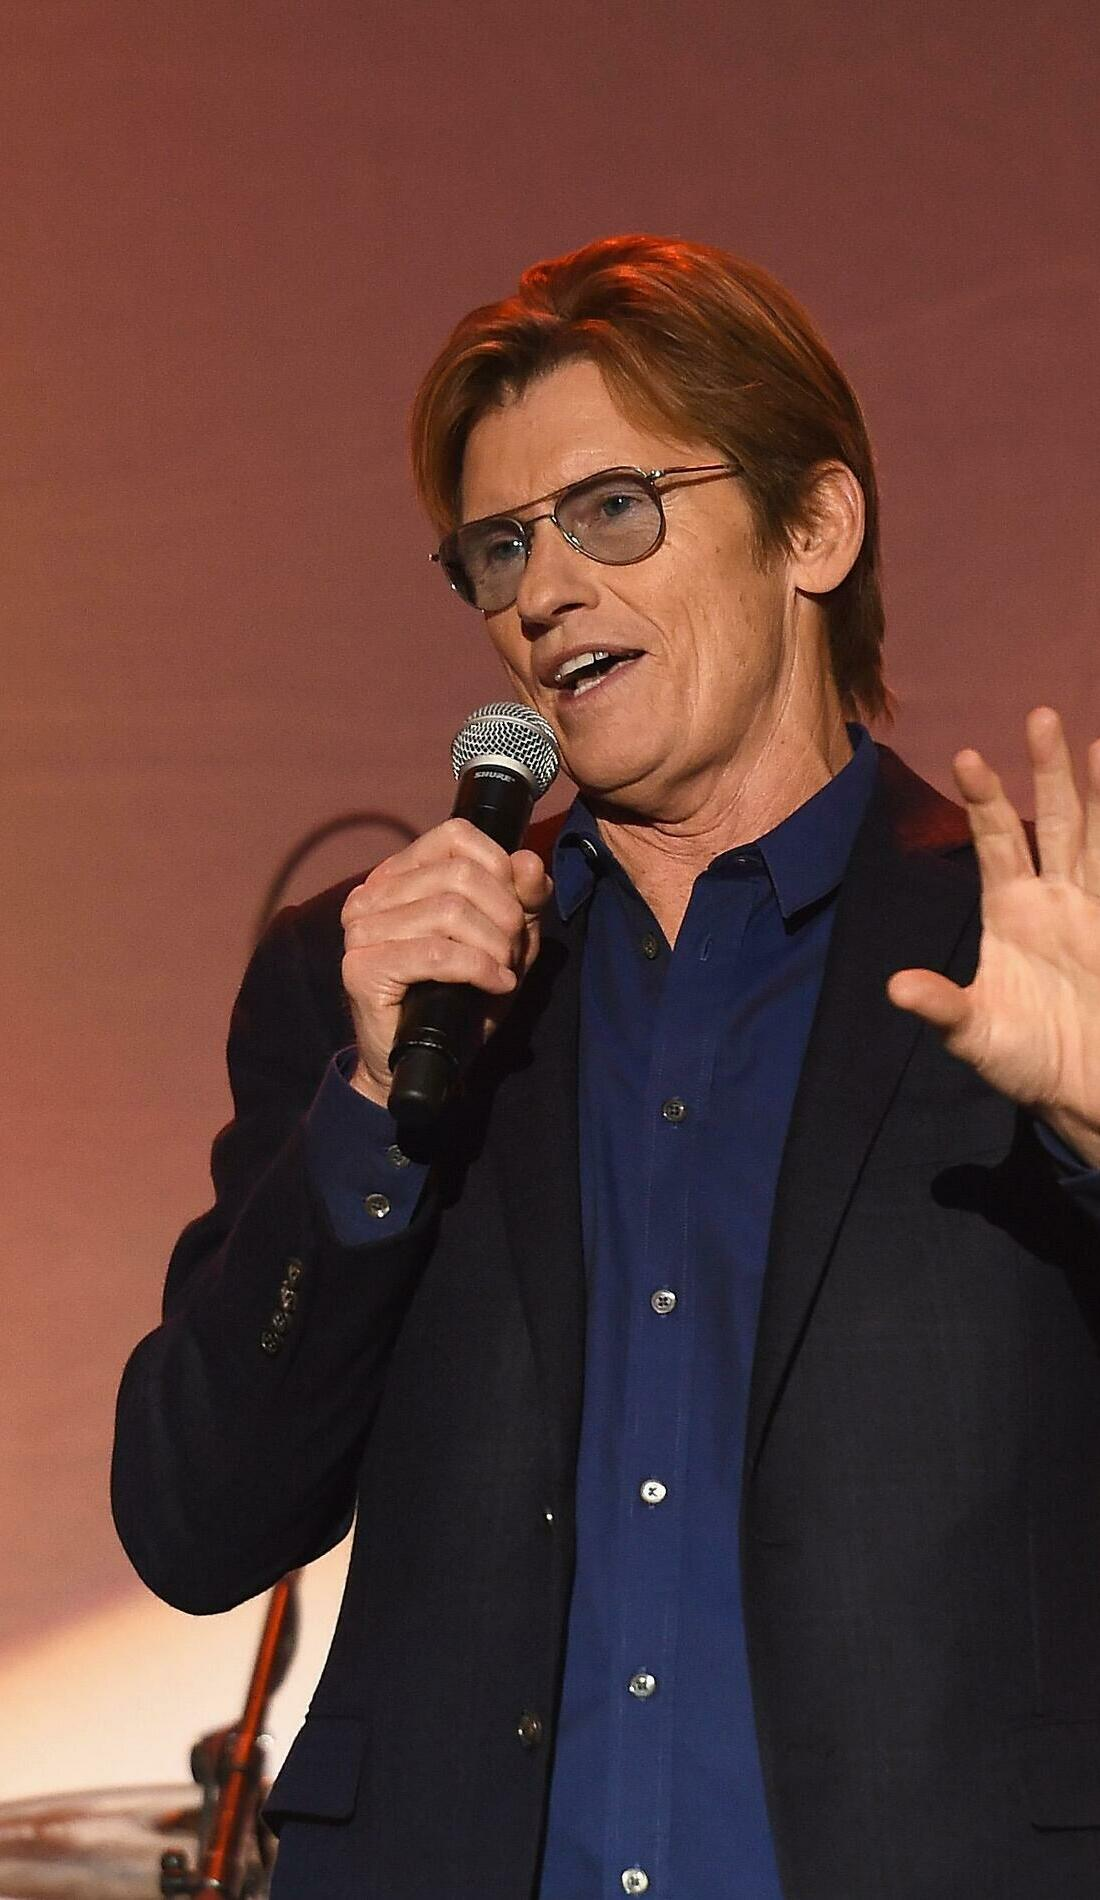 A Denis Leary live event